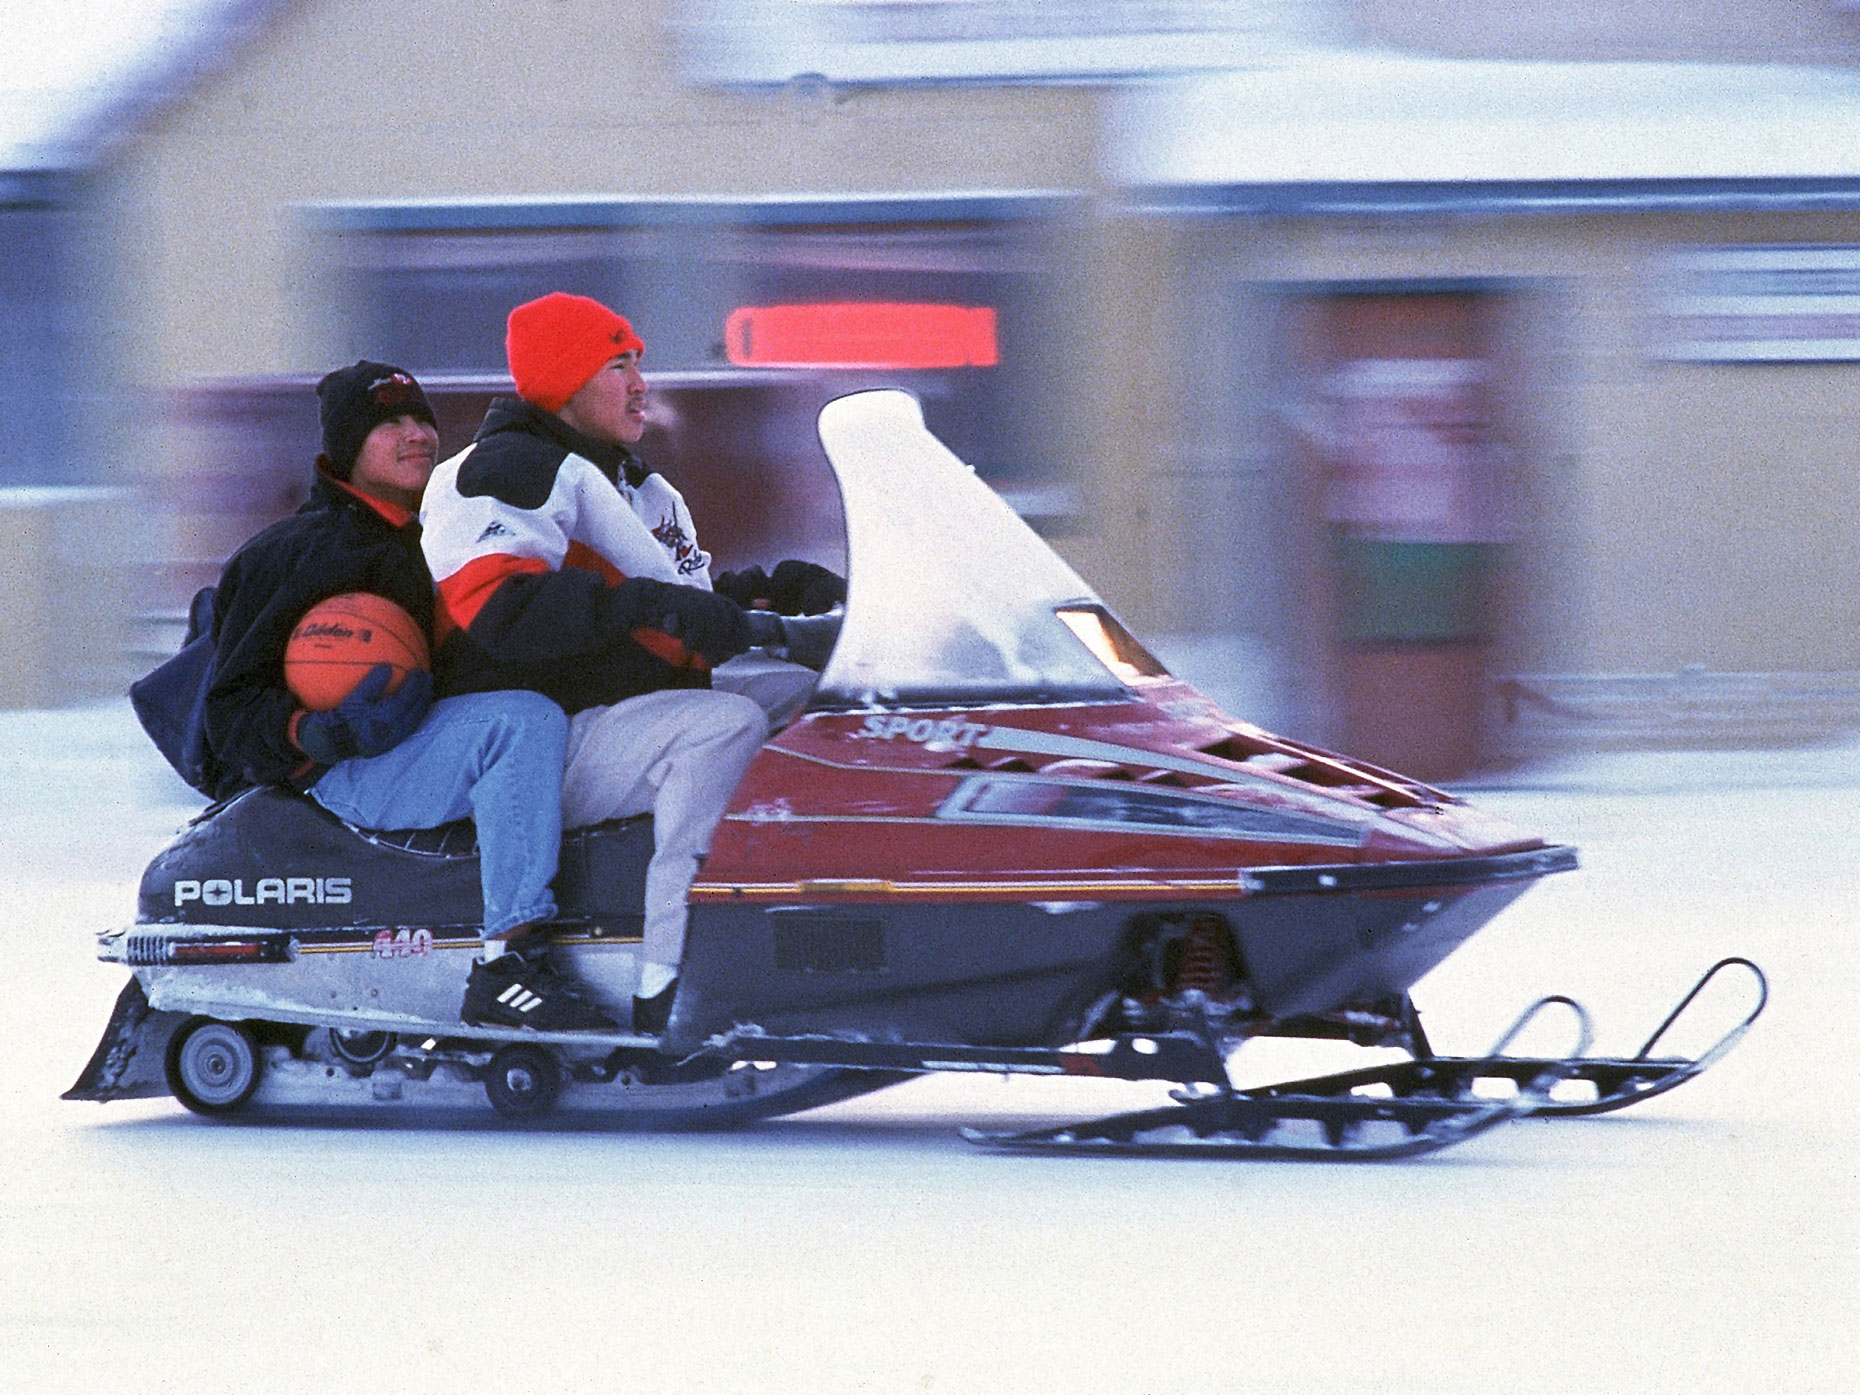 Basketball players head to practice on a snowmobile in Kotzebue, Alaska.